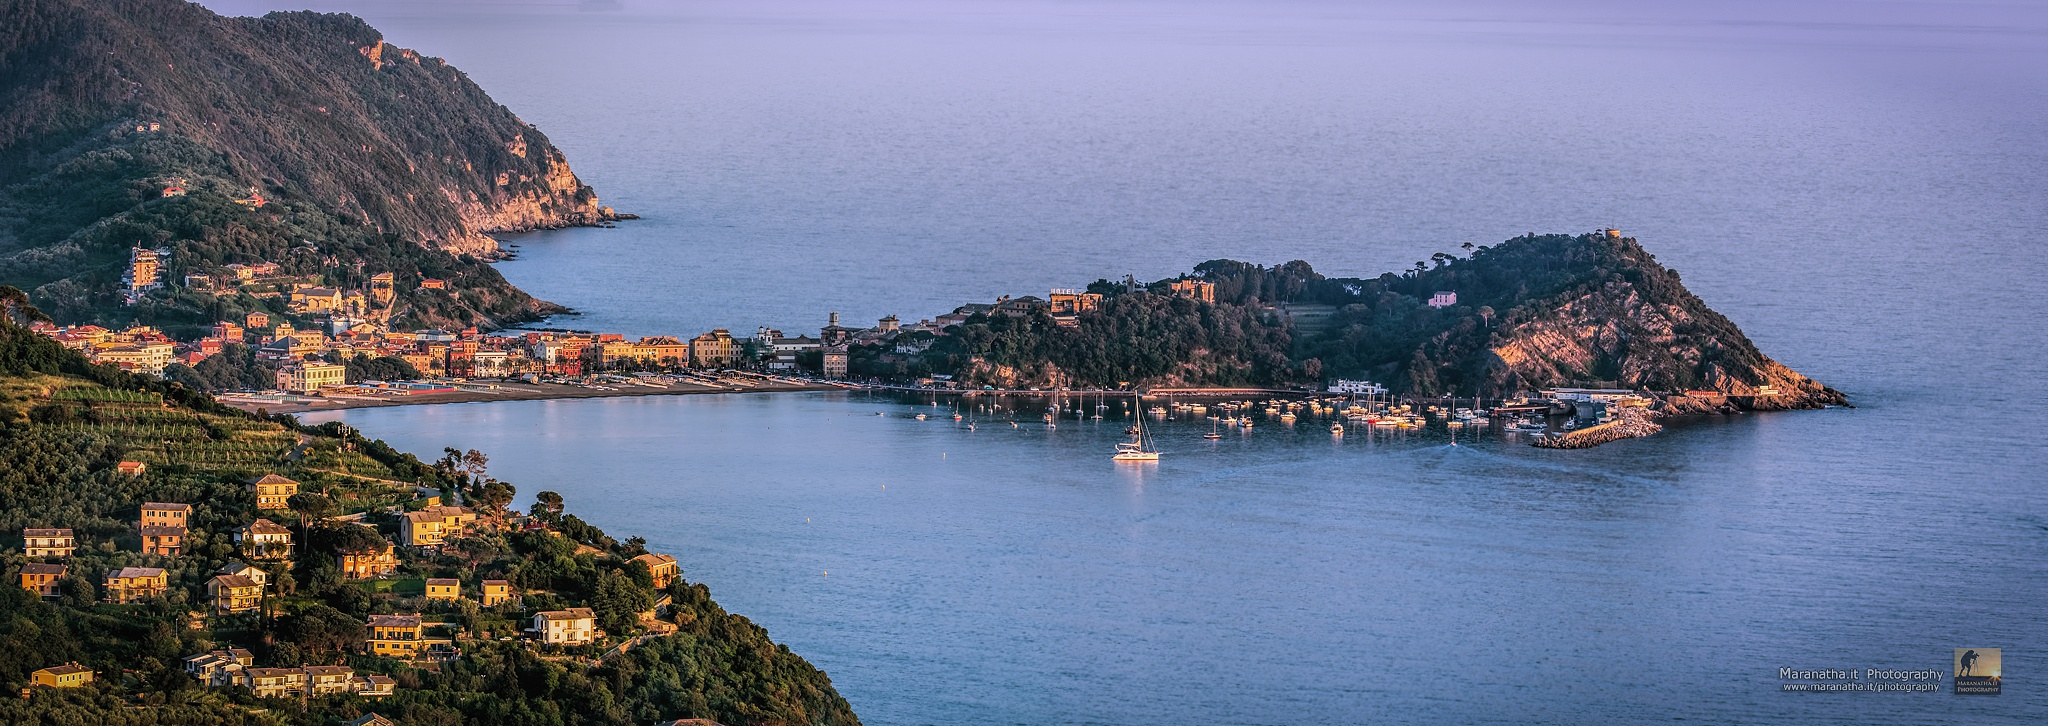 Sestri Levante - Ligurian Sea by Maranatha.it Photography